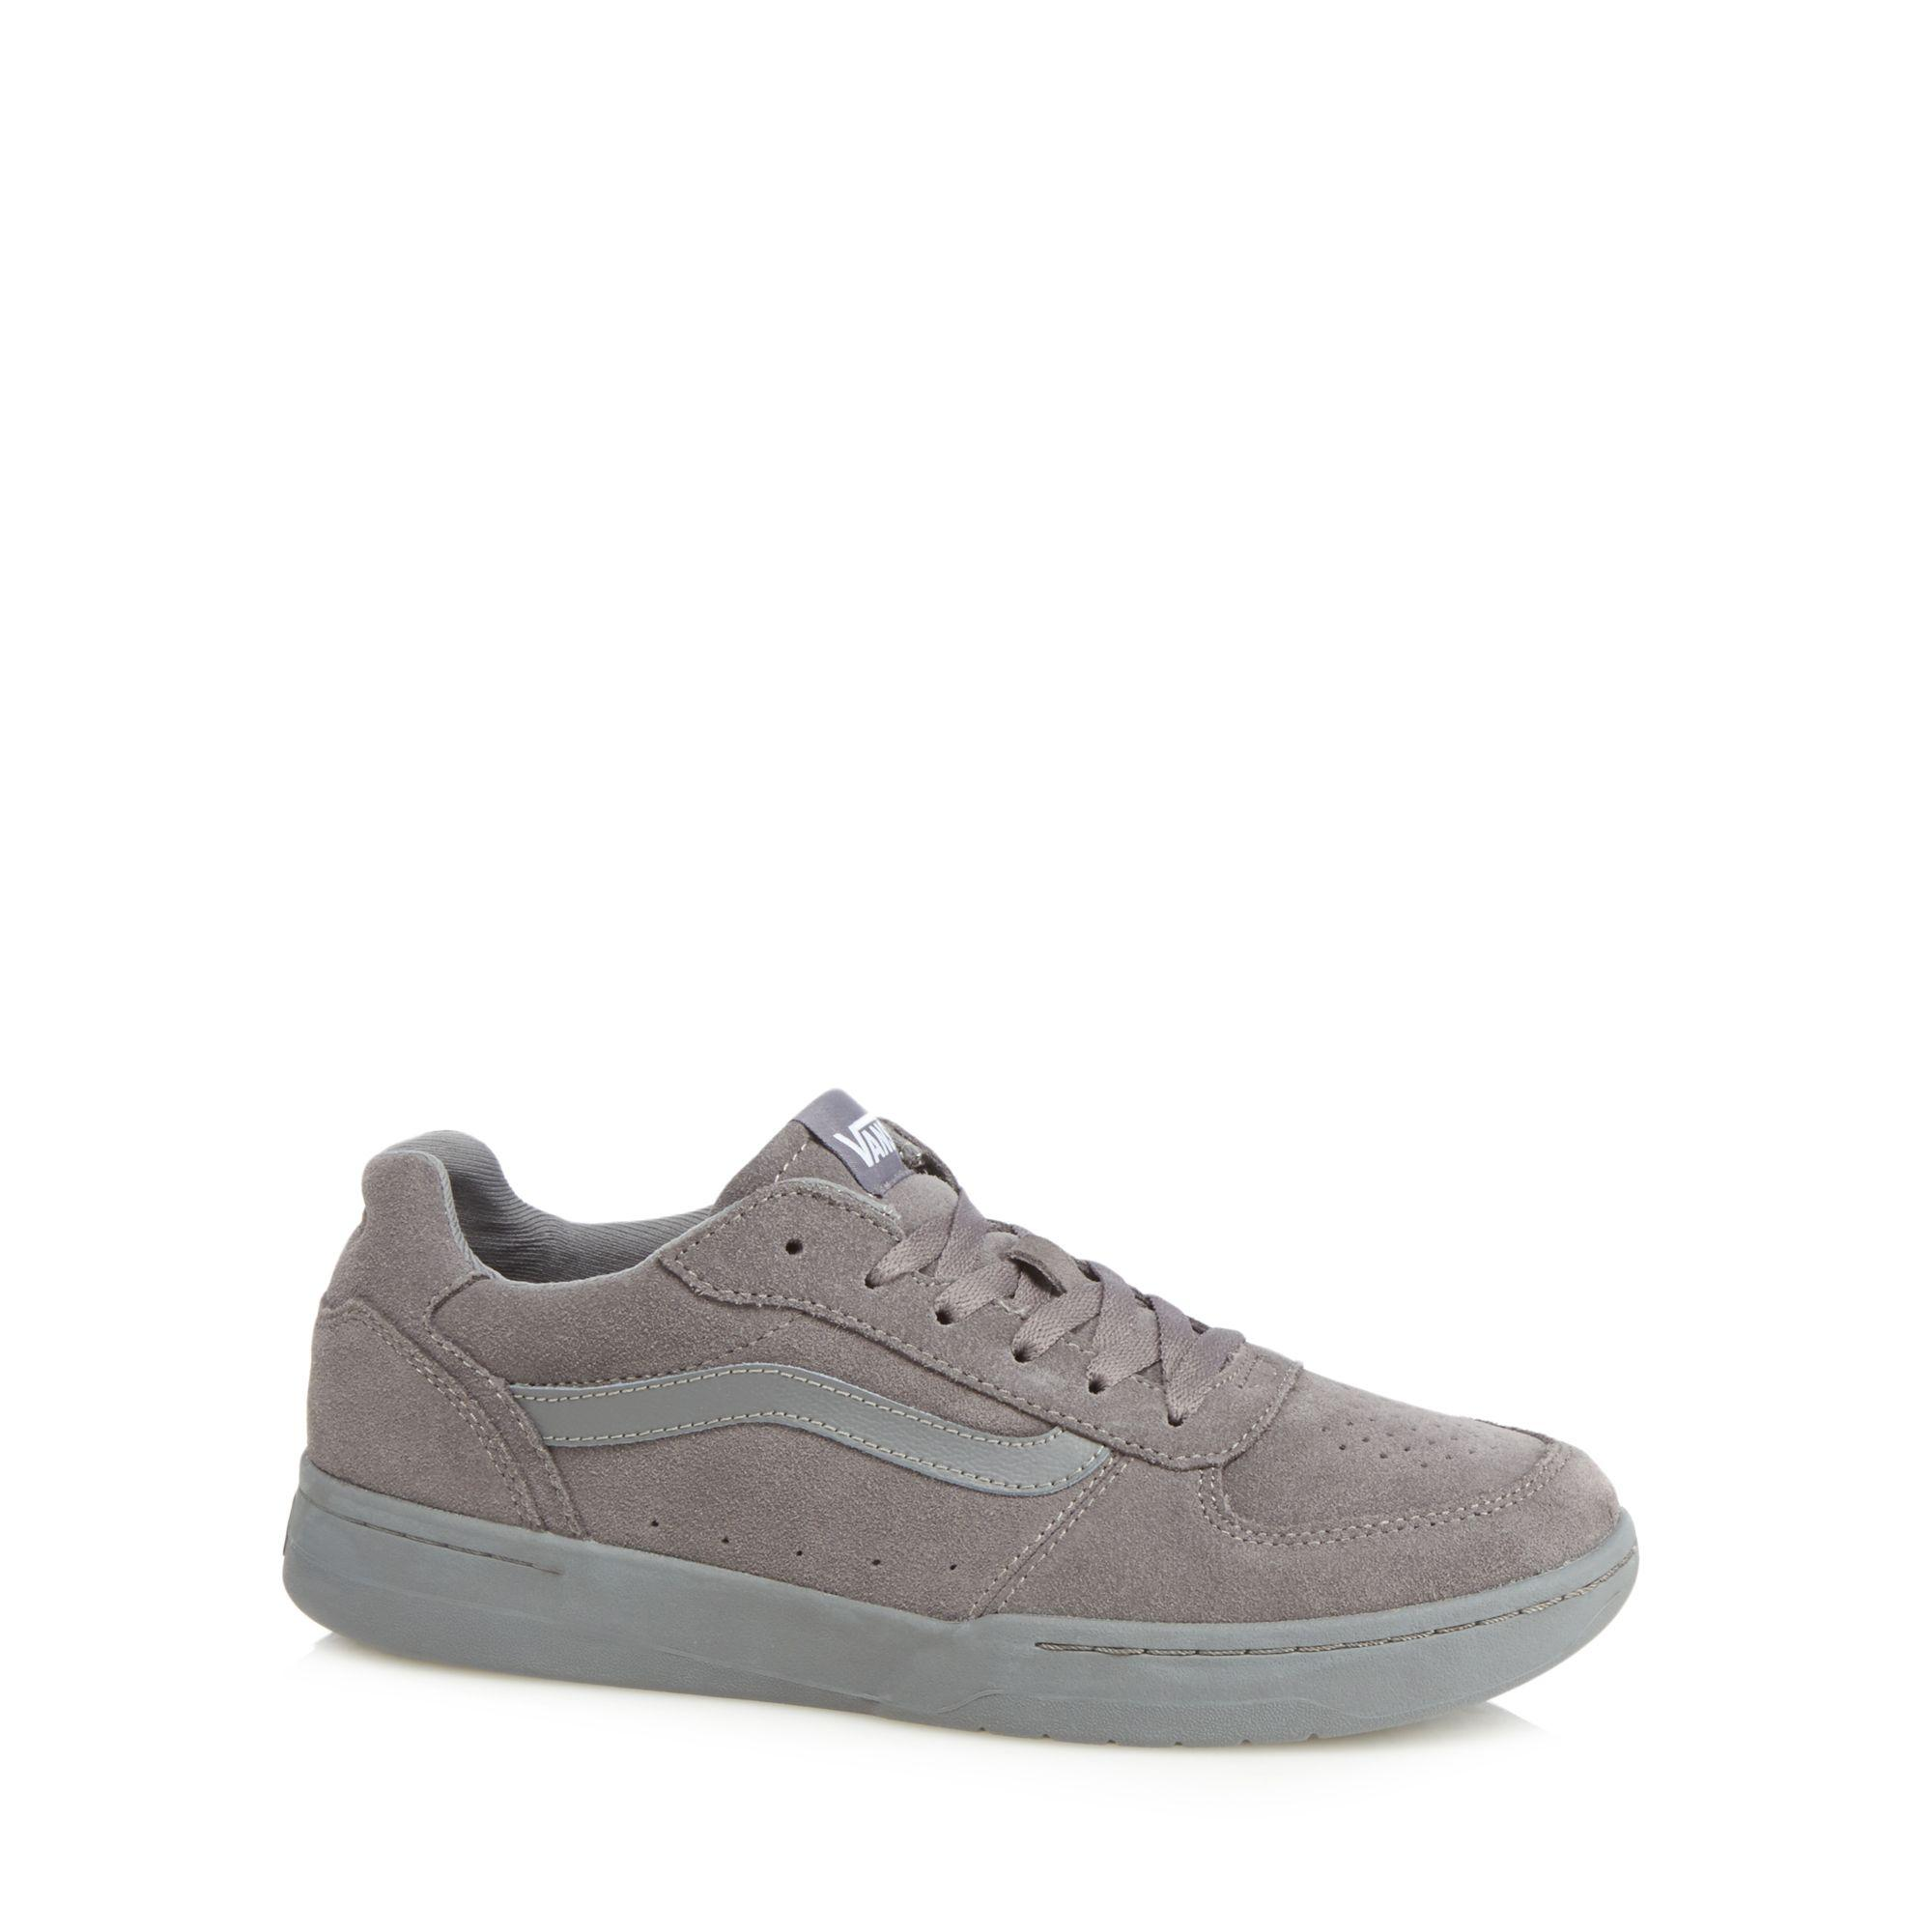 5ea4c24a519 Lyst - Vans Grey Suede  knoll  Trainers in Gray for Men